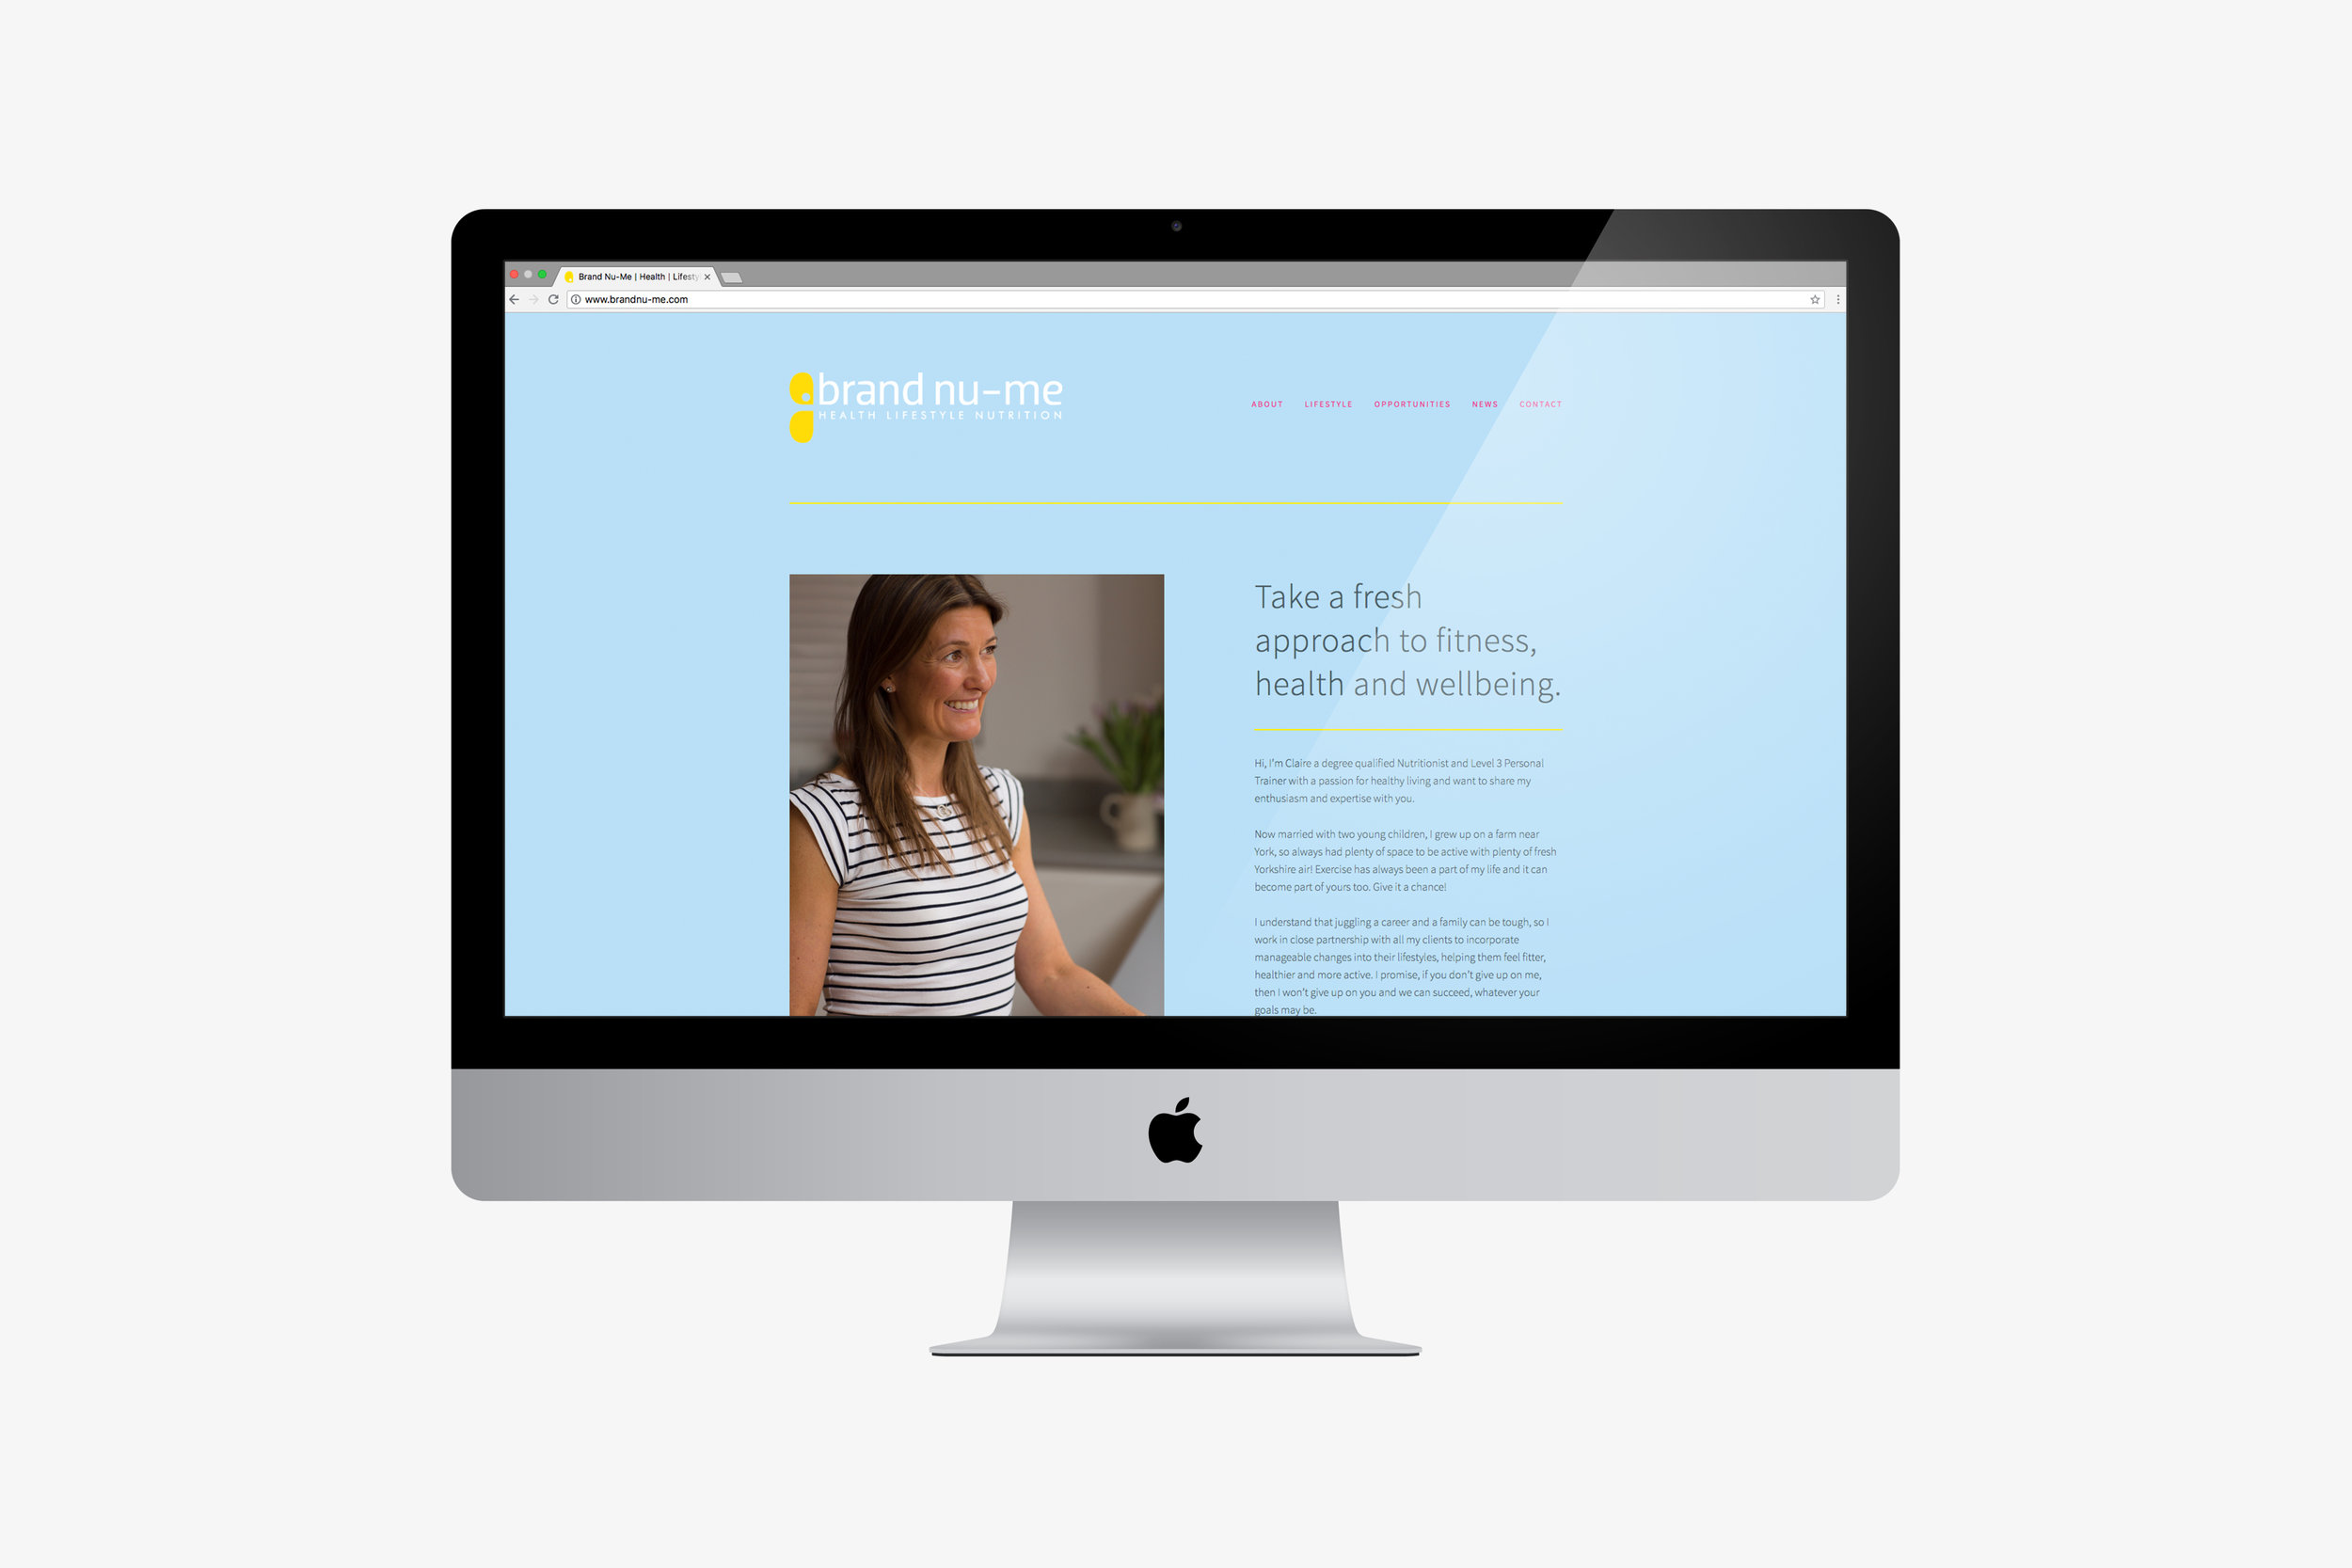 Website design company for Brand Nu-Me, based in Tunbridge Wells, Kent